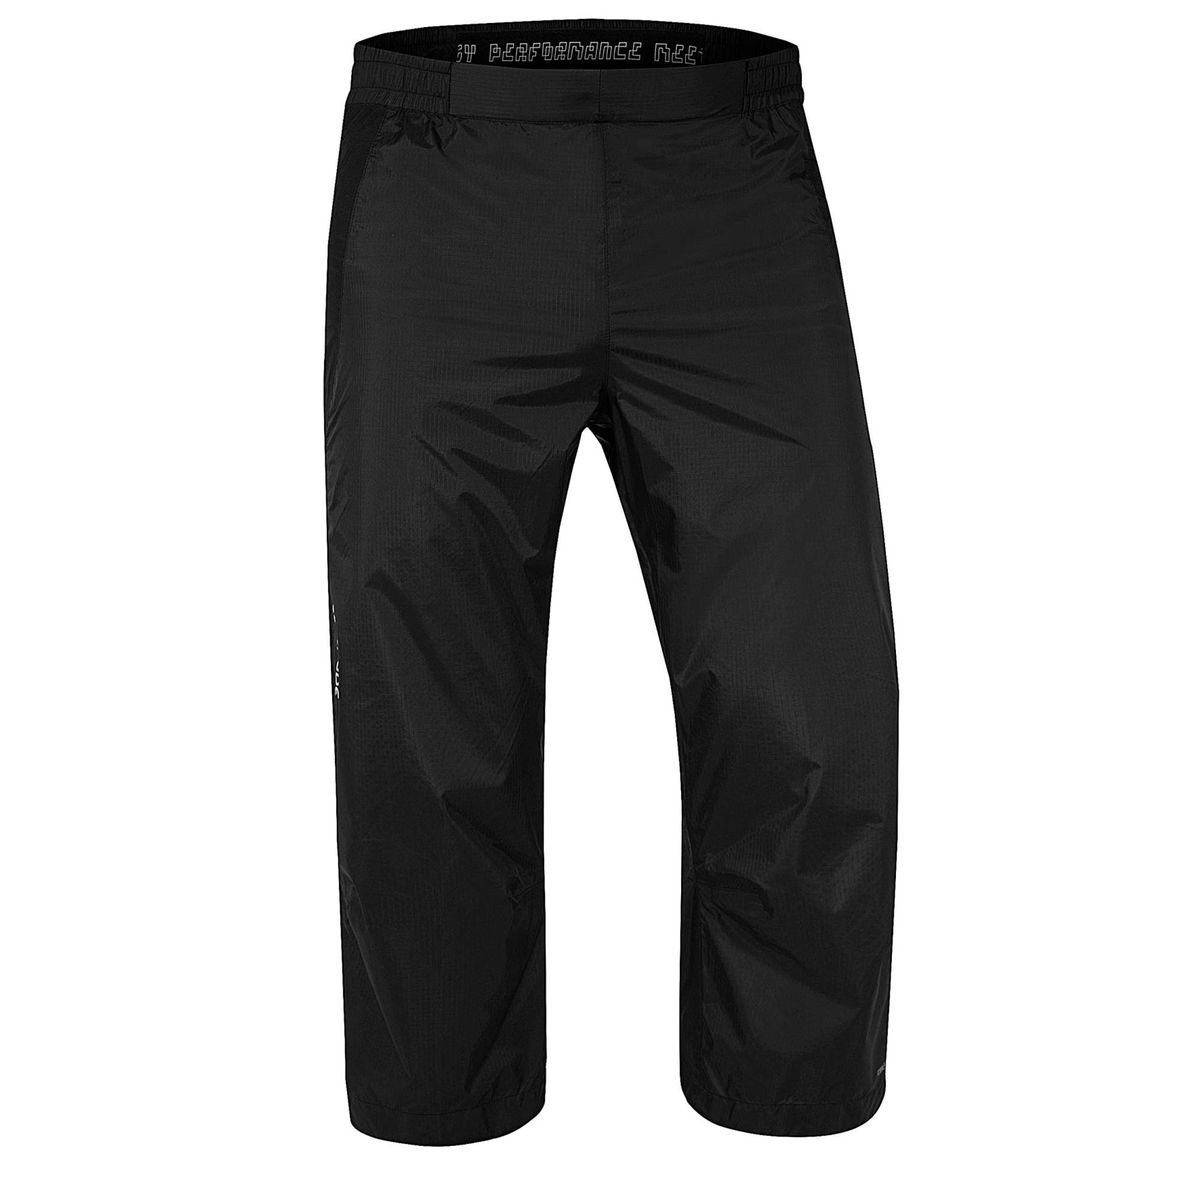 SPRAY ¾ PANTS III waterproof trousers